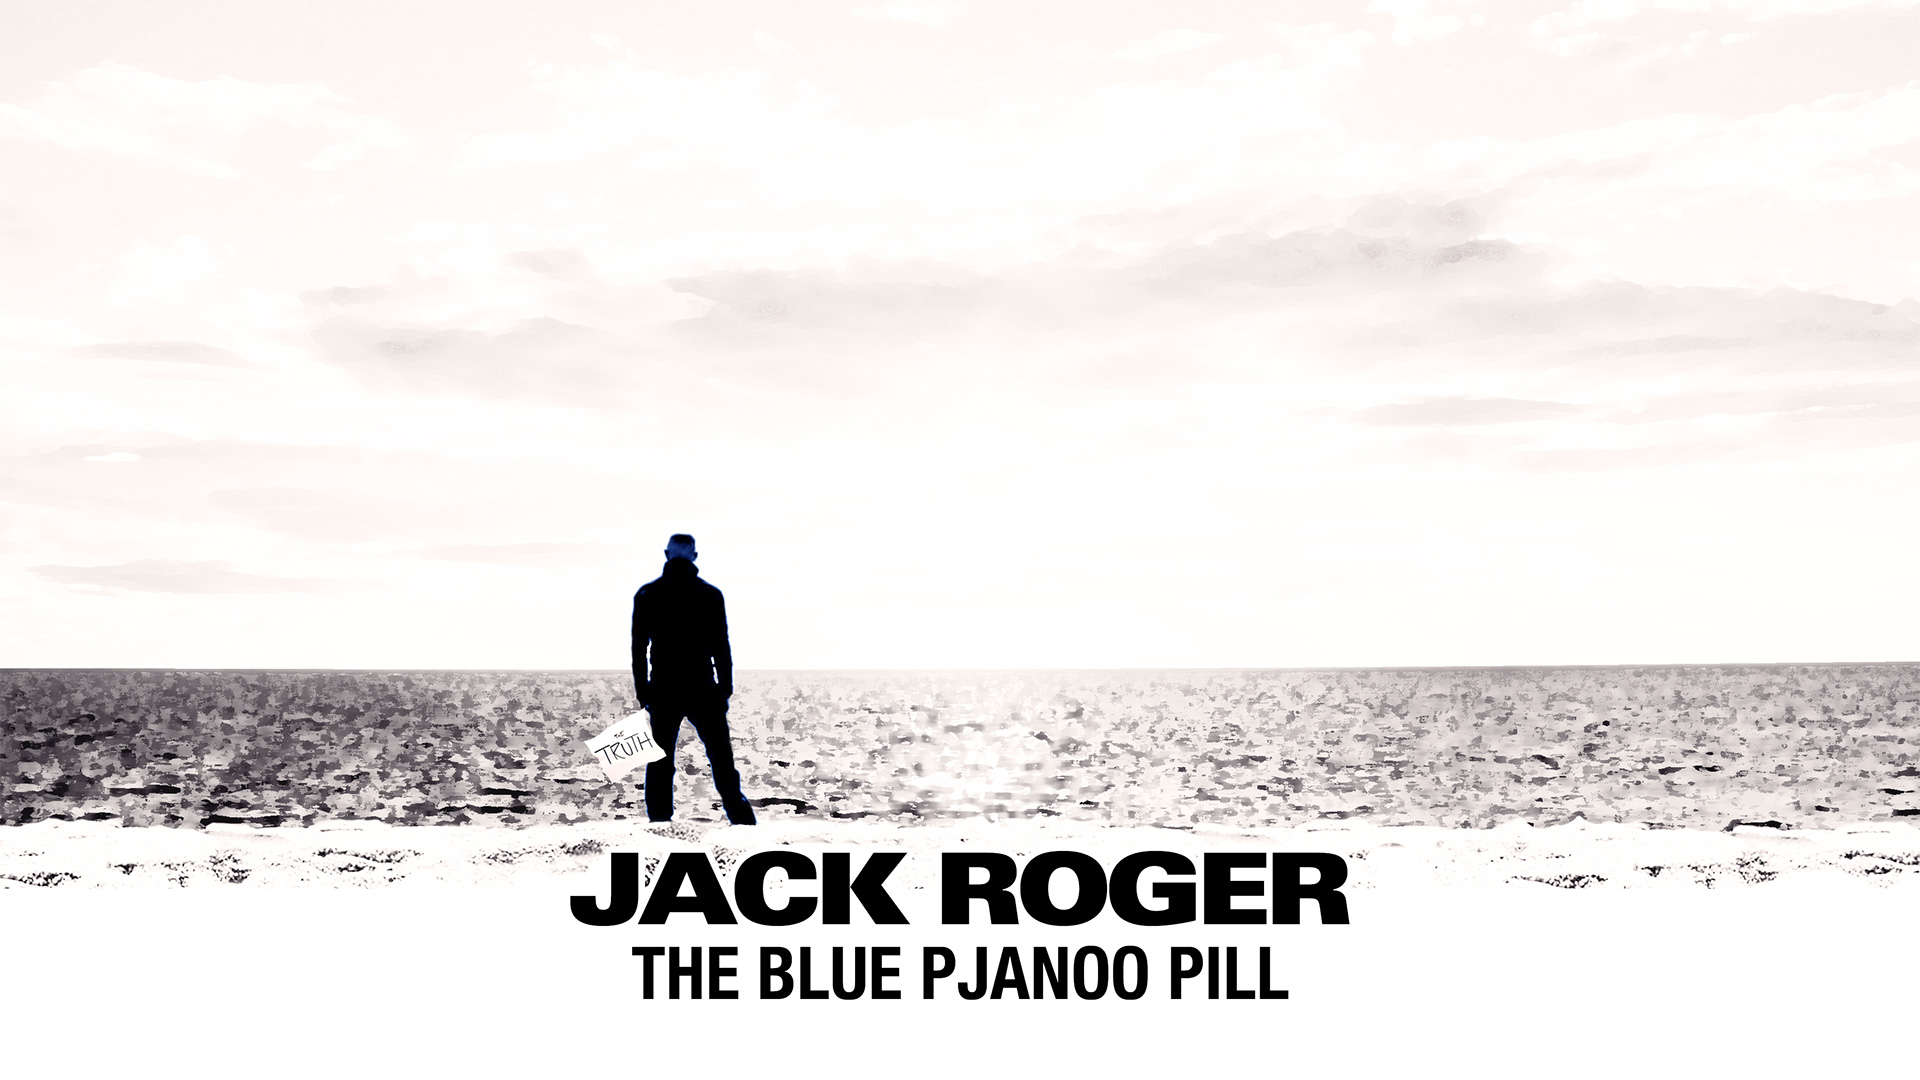 09. The Blue Pjanoo Pill (Linkin Park, Eiffel 65, Eric Prydz, Mike Posner)